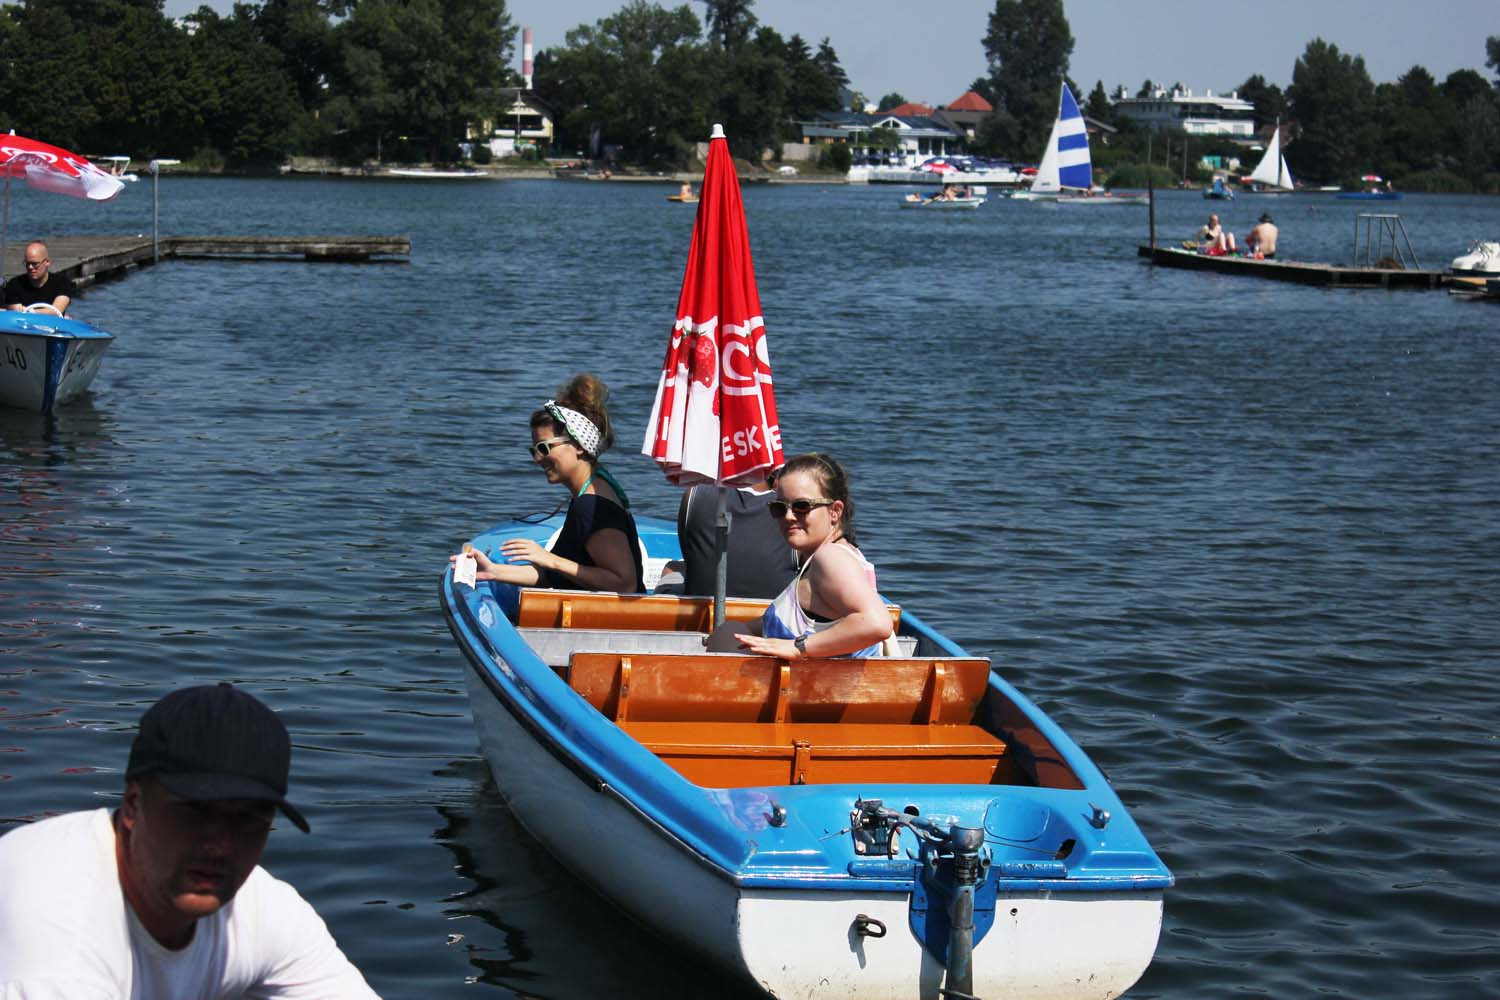 Yvonne-Just-Travelous-and-Nina-Travelettes-in-their-electric-boat